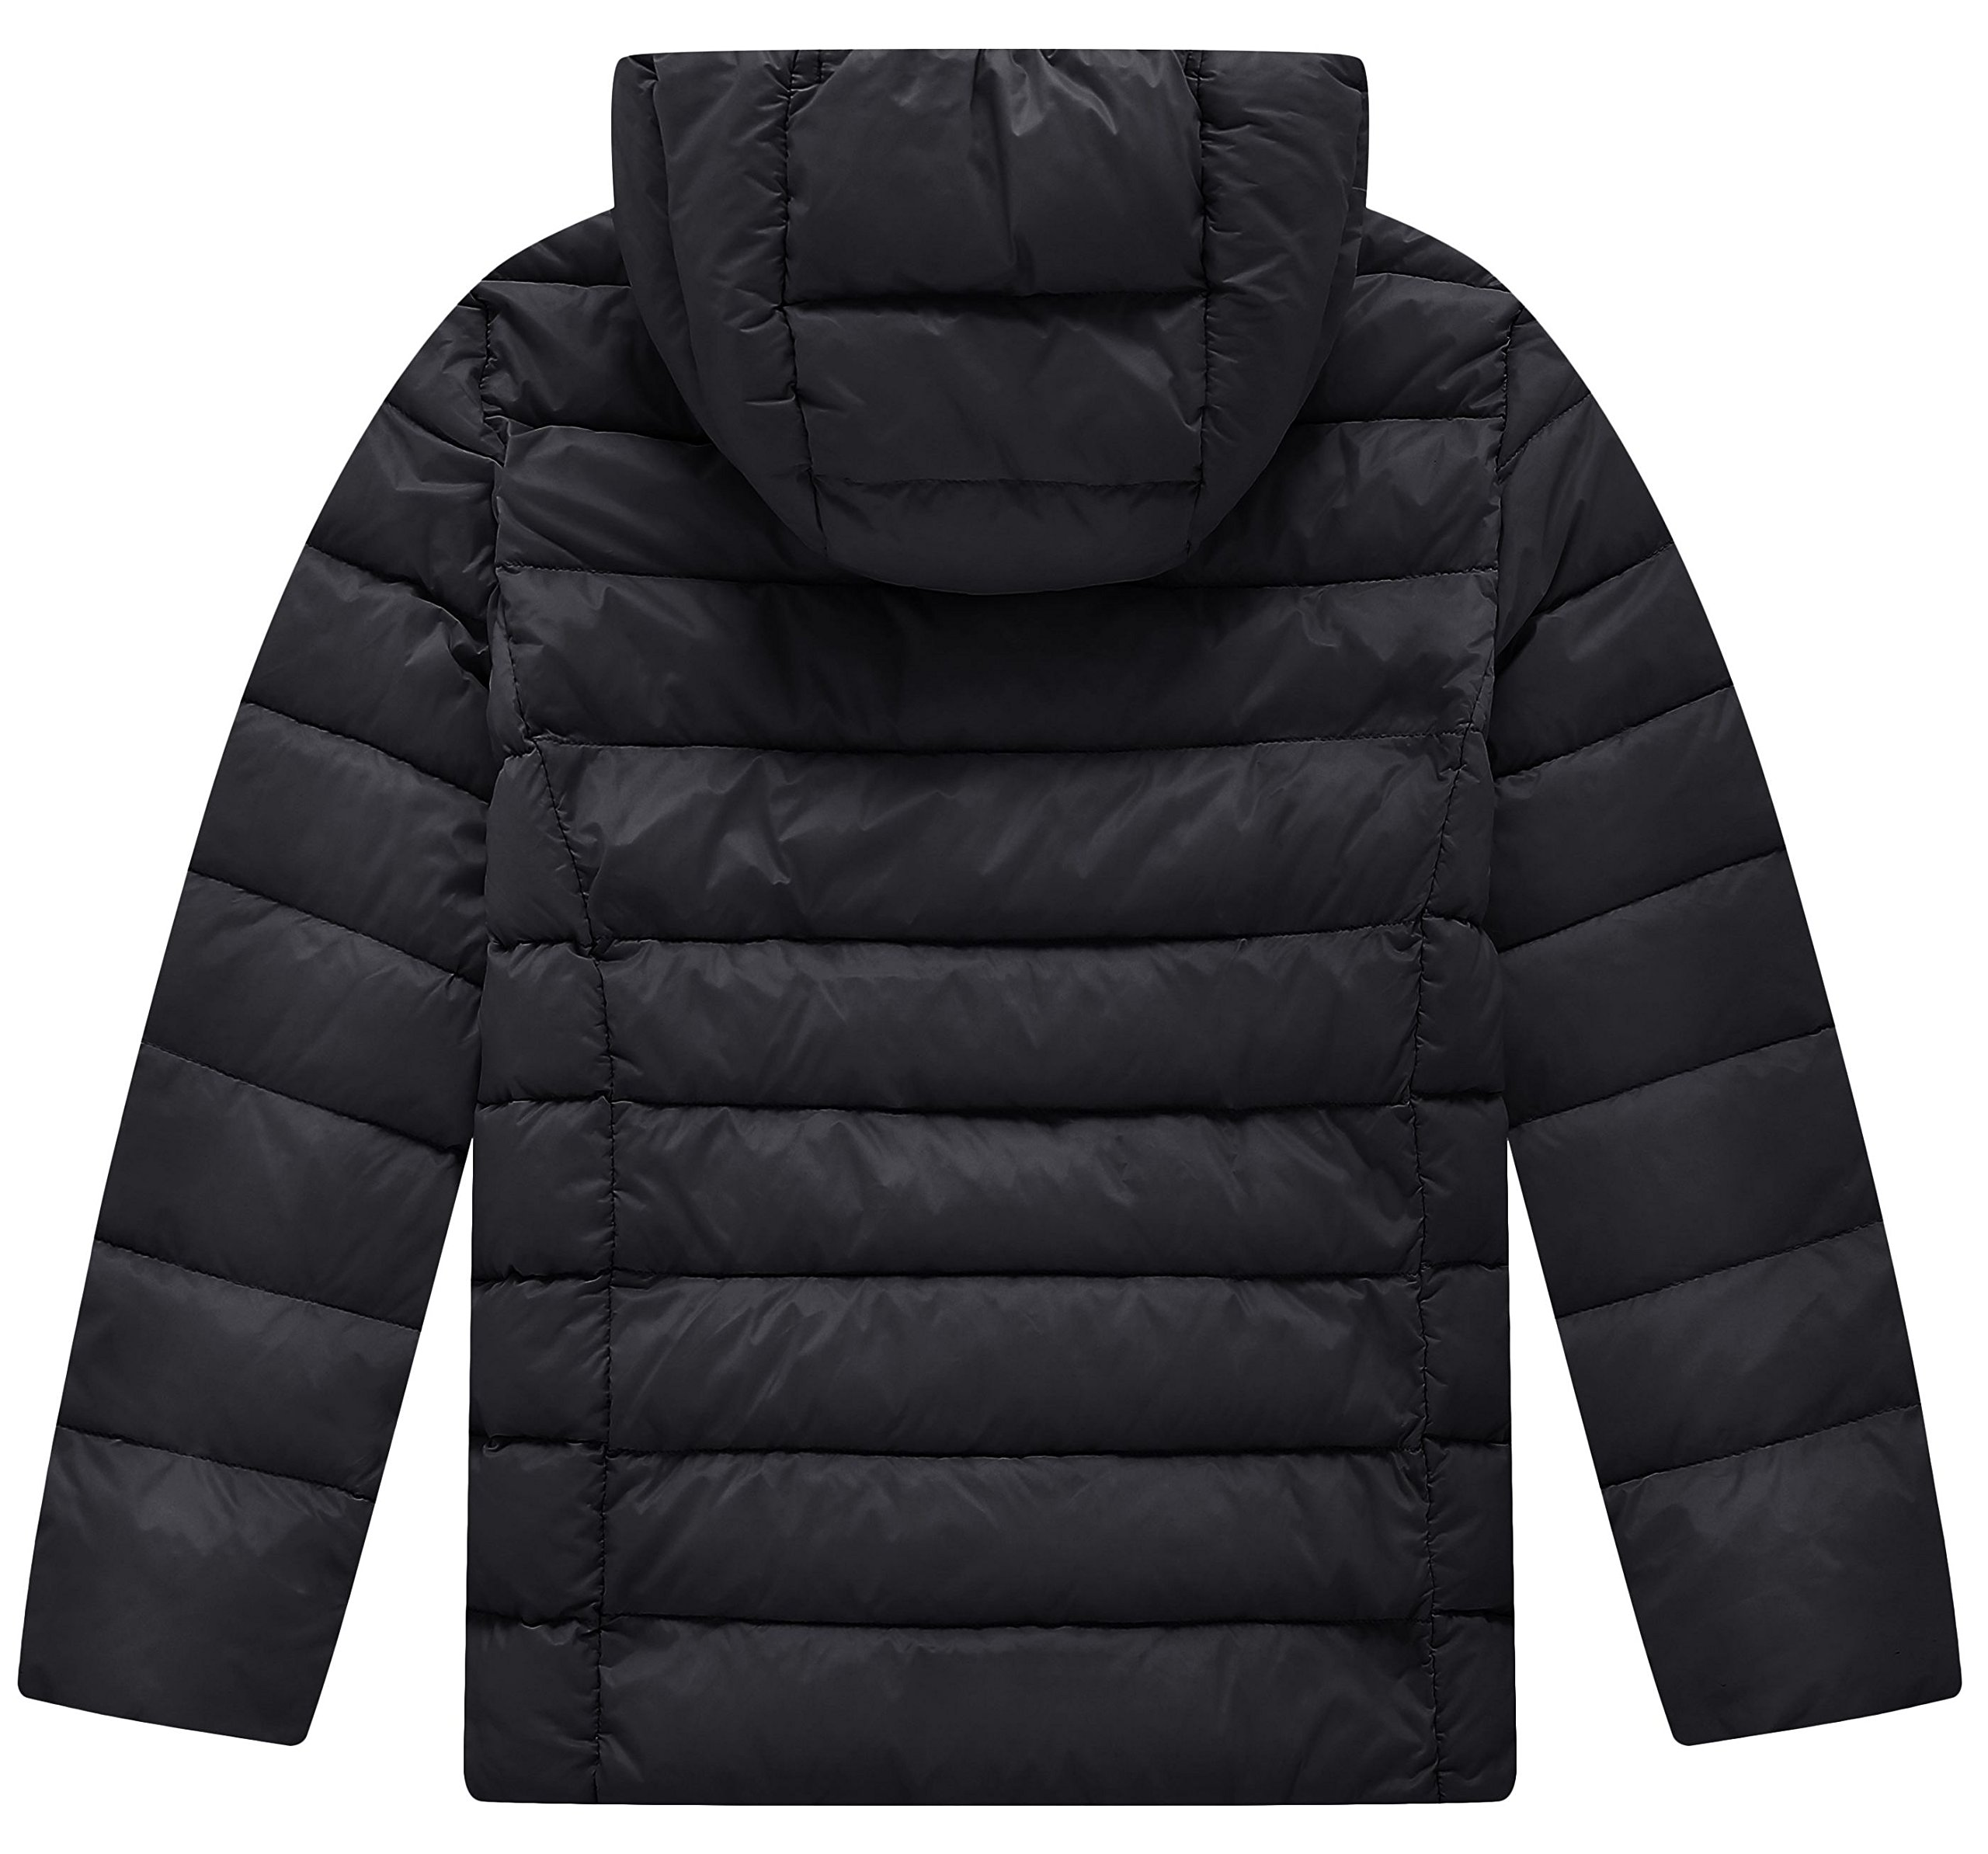 Wantdo Boy's Lightweight Puffer Down Jacket with Hood Packable Outdoors Wind Breaker(Black, 10/12) by Wantdo (Image #2)